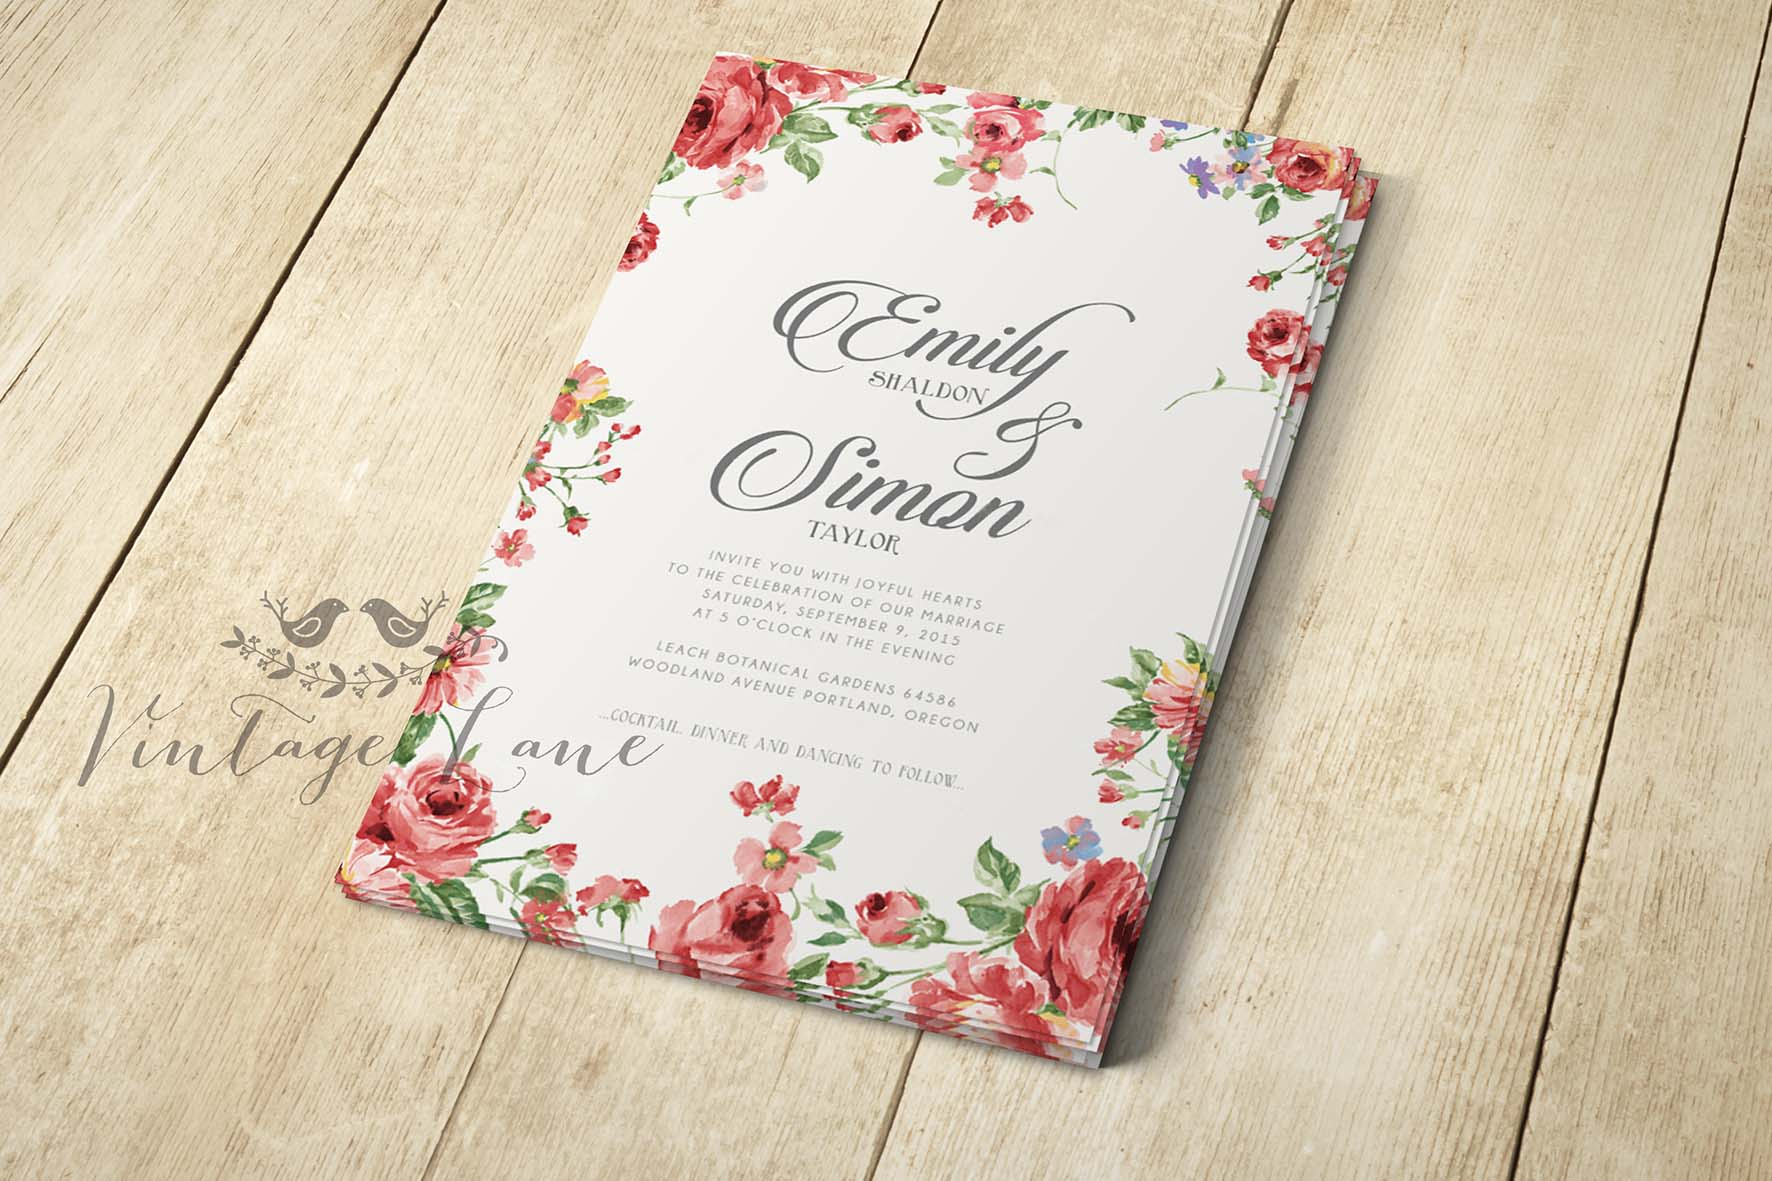 Wedding invitations ireland budget archives vintage lane floral rose wedding invitations cork ireland vintage lane stopboris Image collections